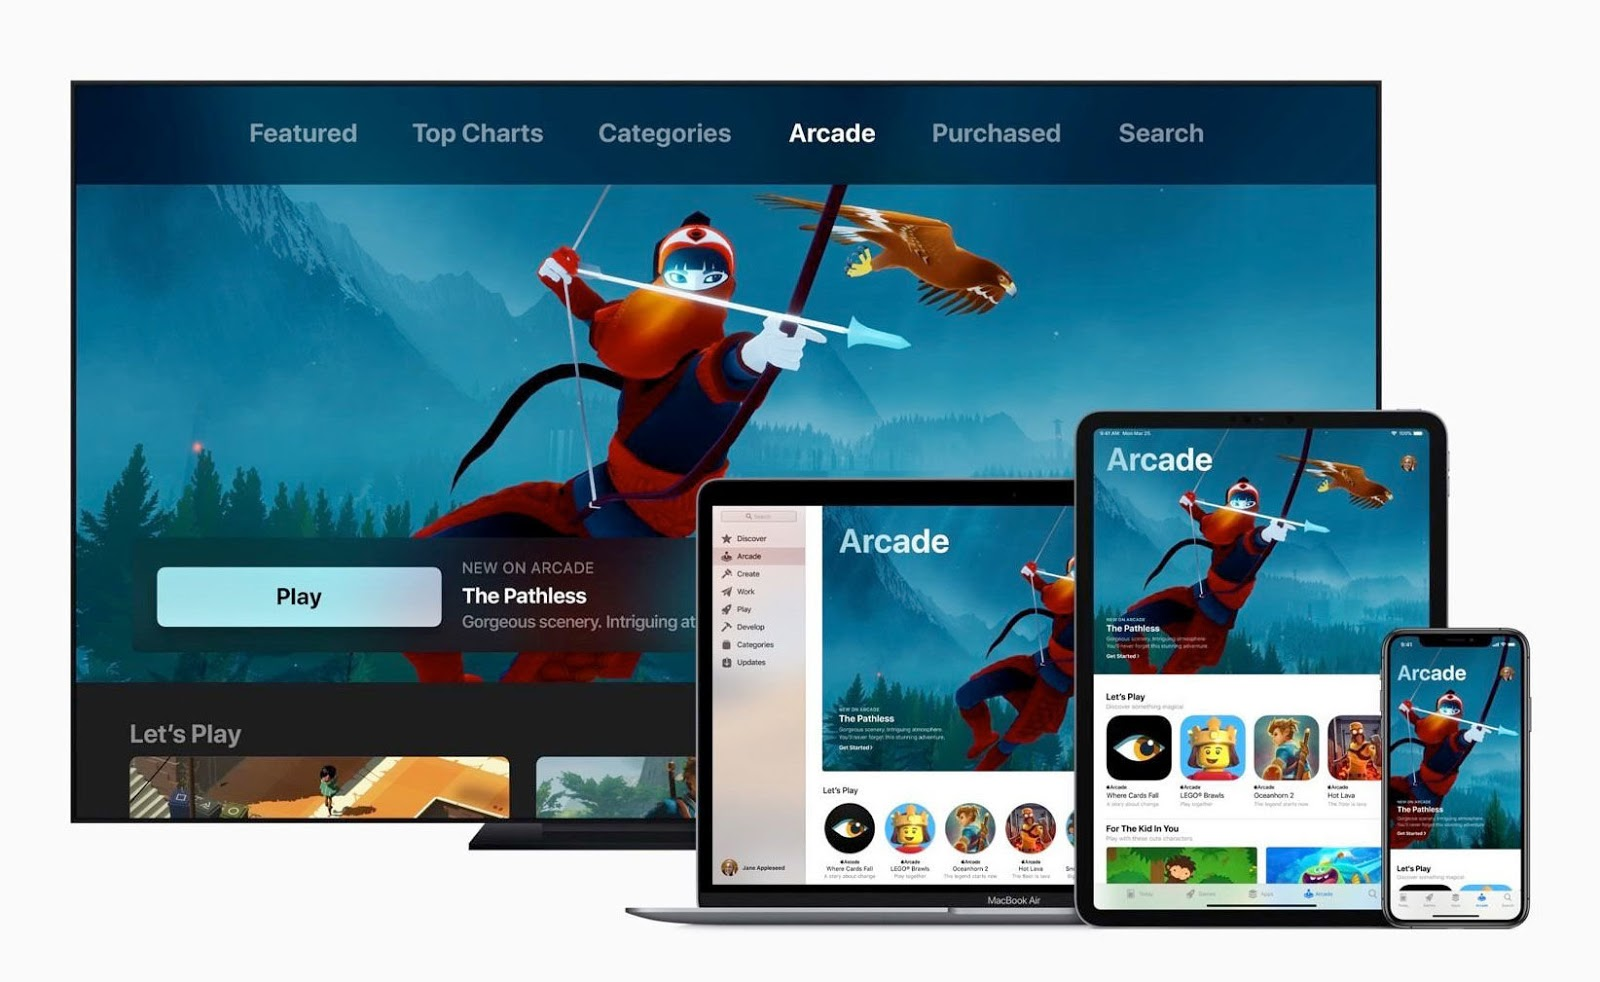 Arcade-giochi-streaming-Apple